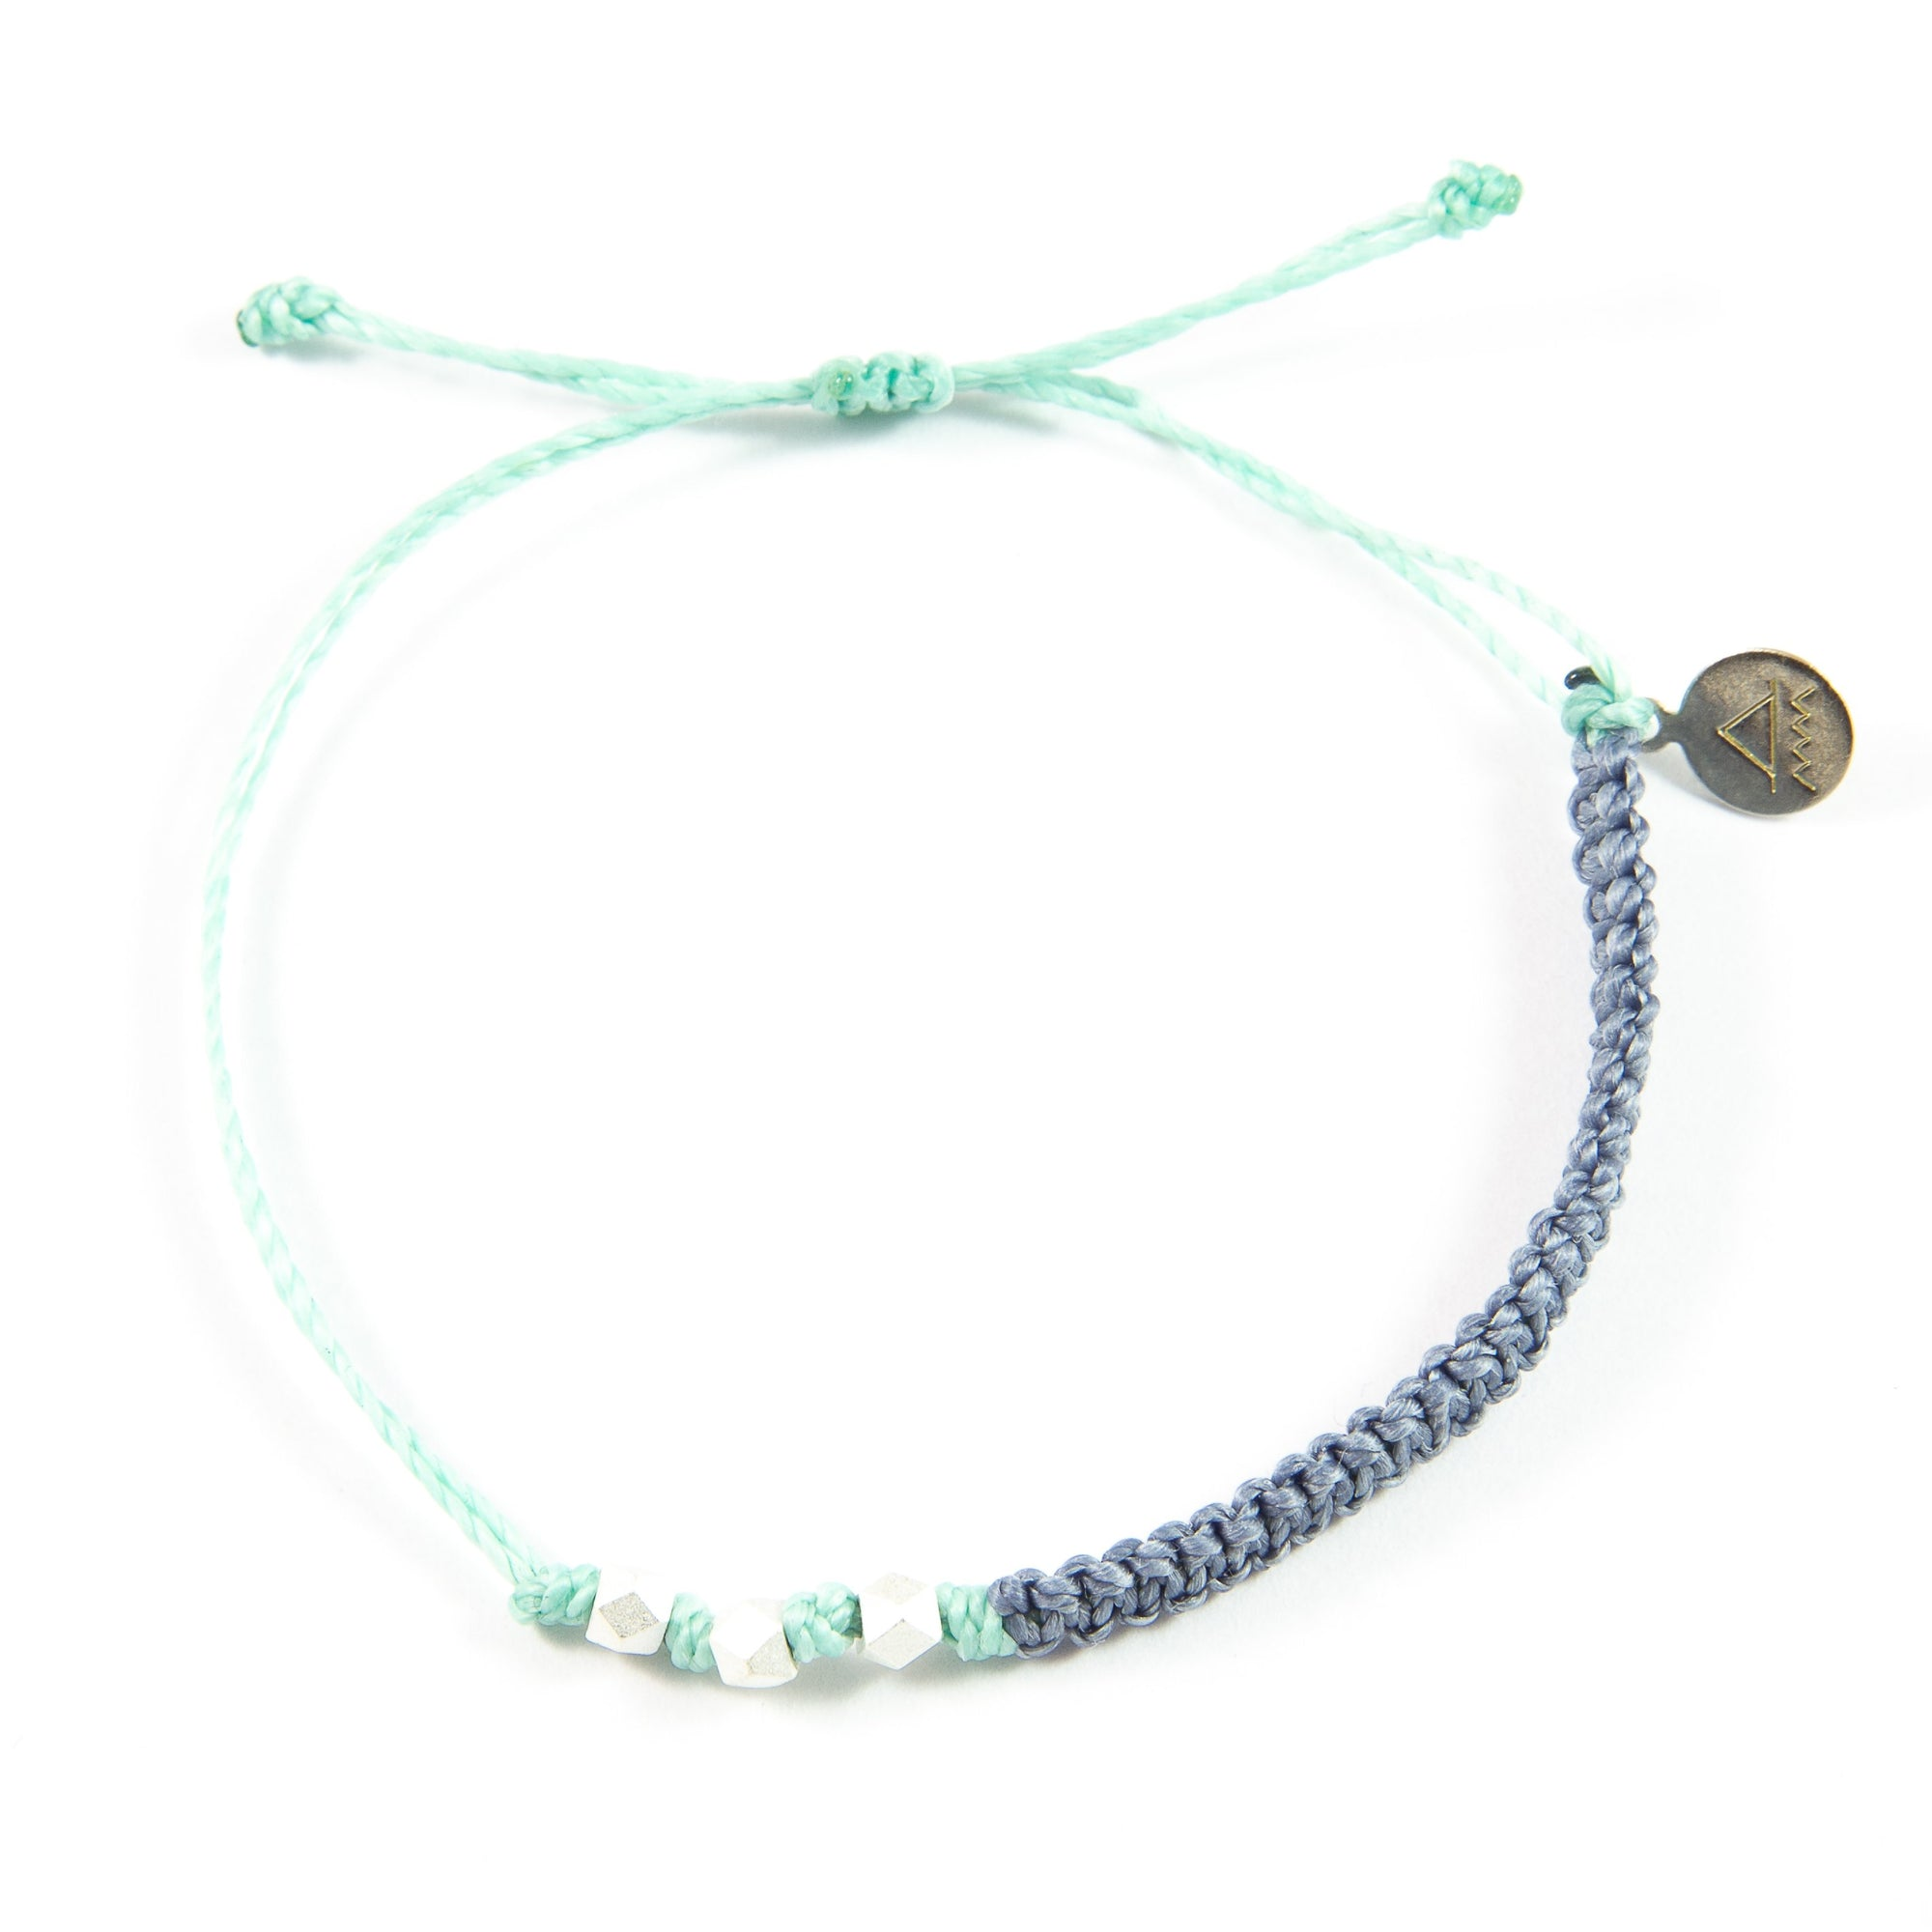 Denim & Cucumber Macrame Bracelet in Silver